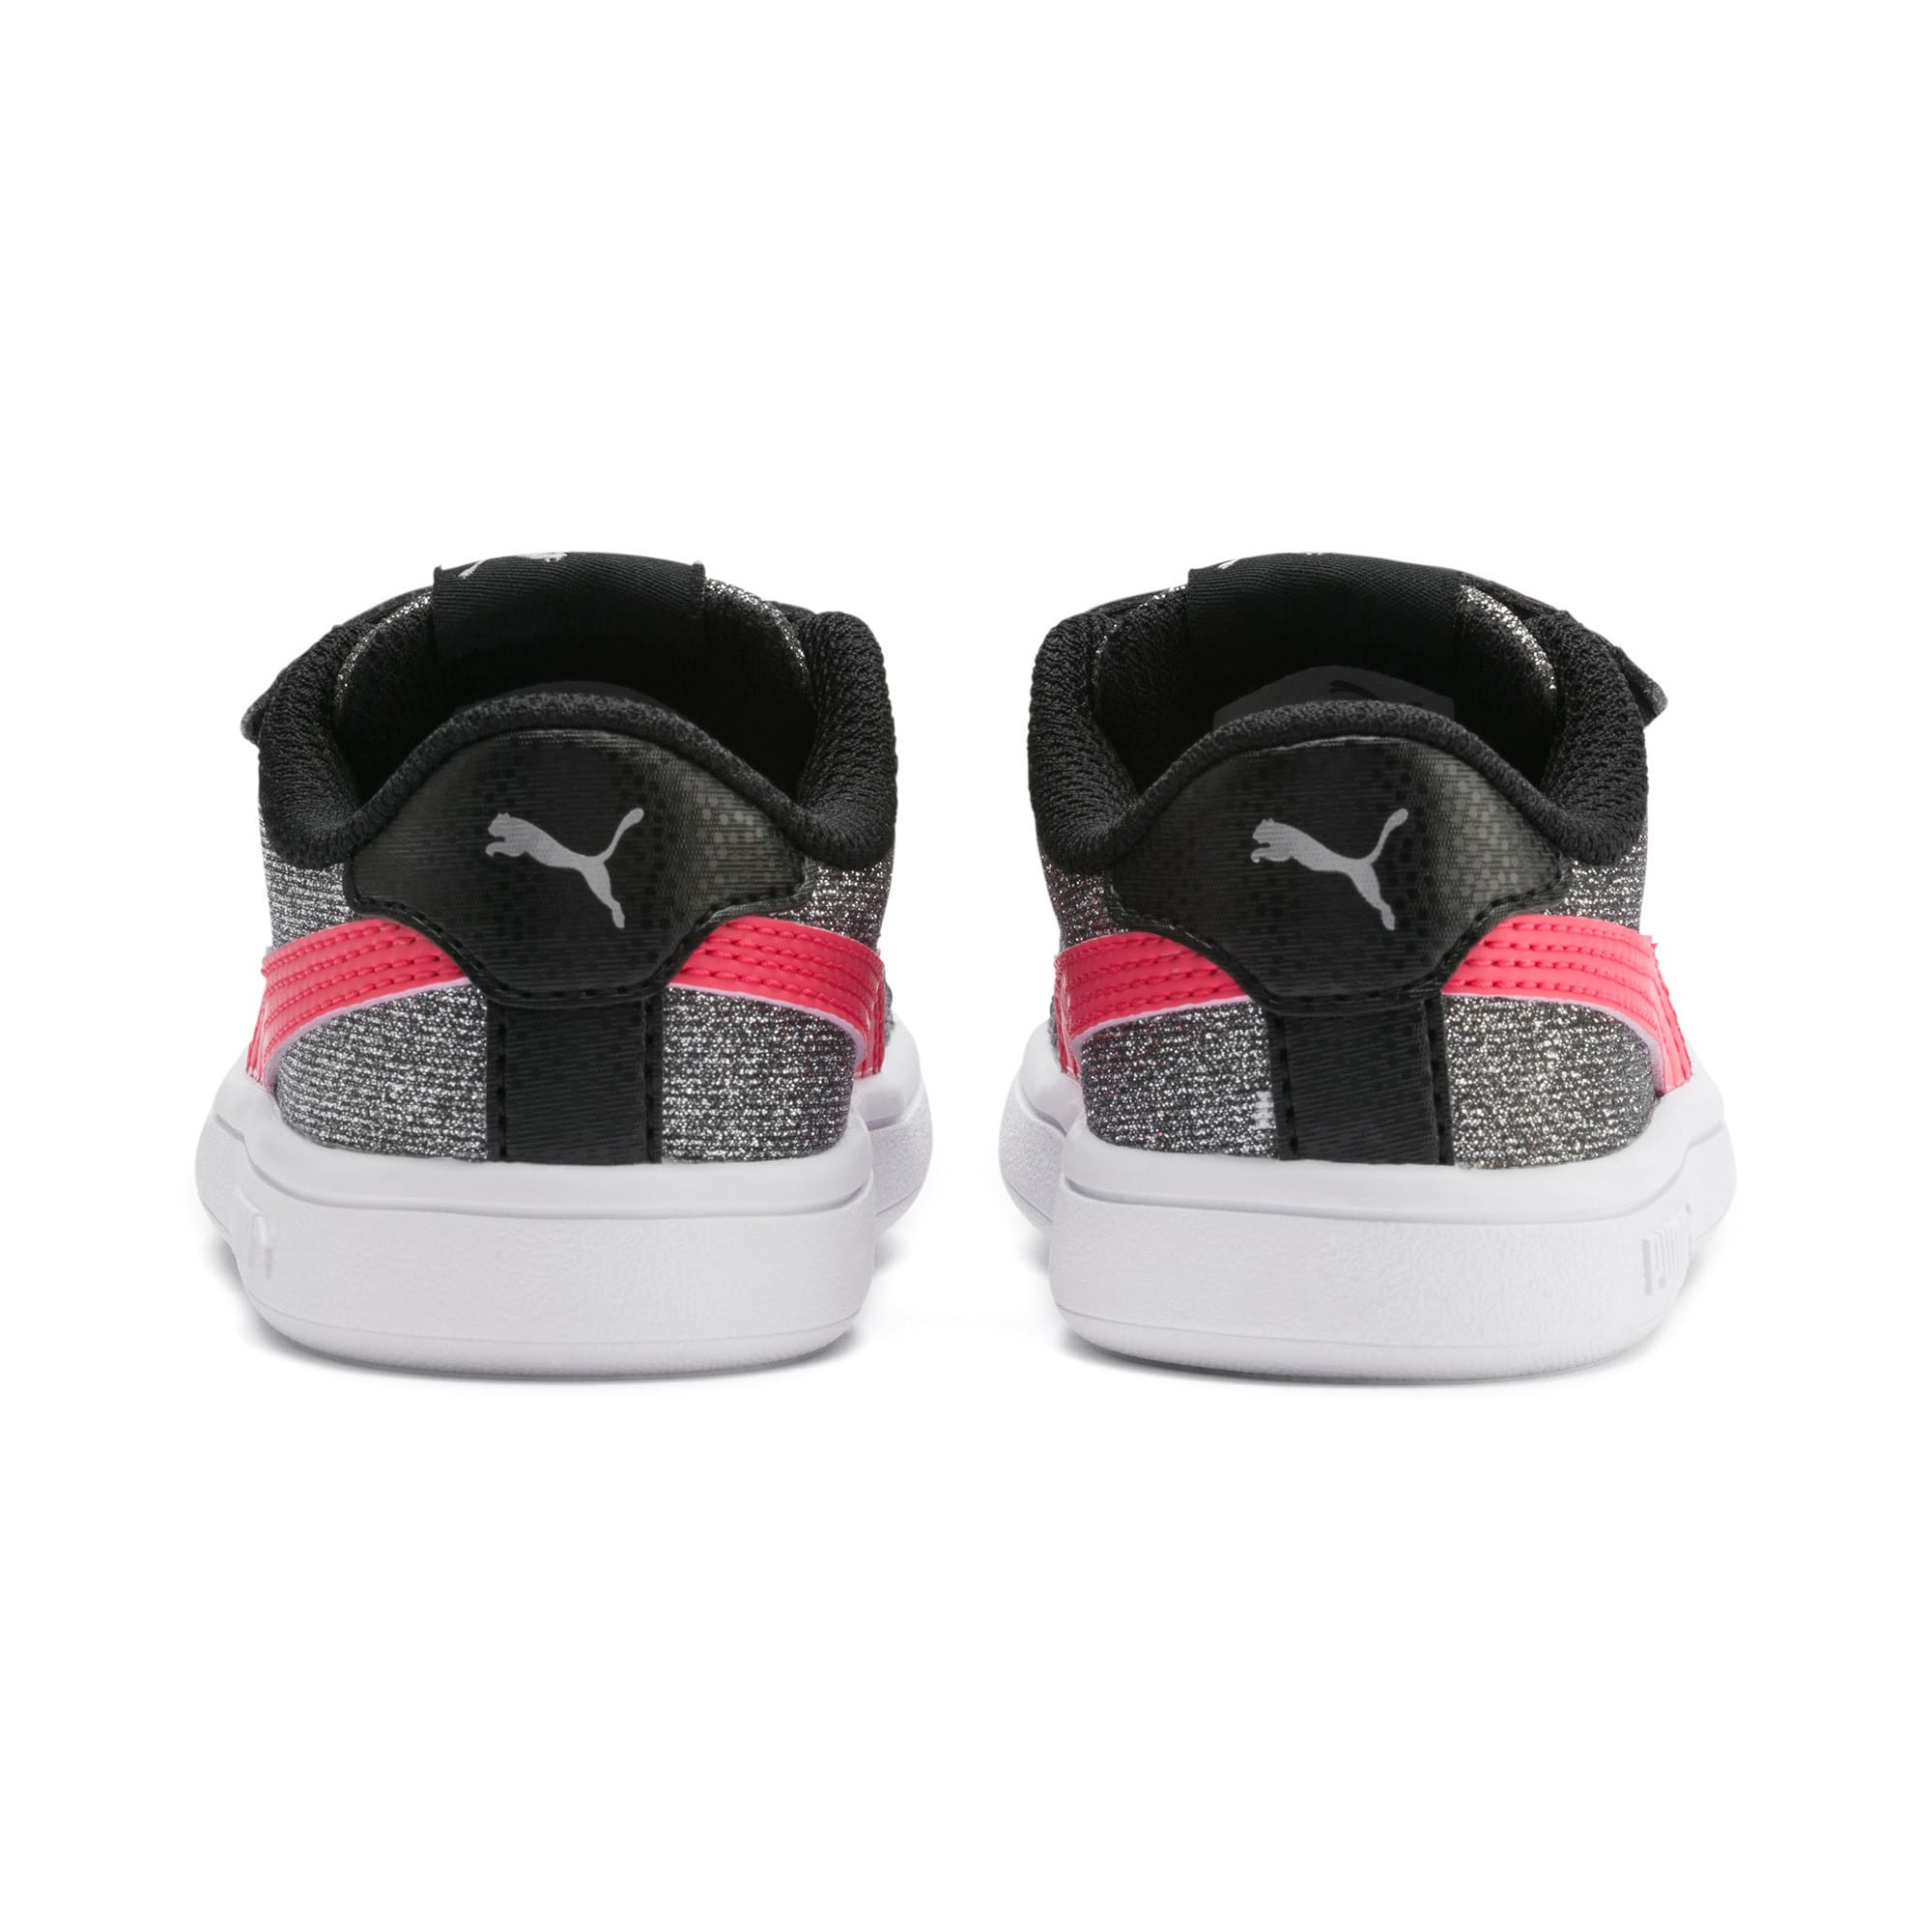 Thumbnail 3 of PUMA Smash v2 Glitz Glam Baby Girls' Trainers, Puma Black-Calypso Coral, medium